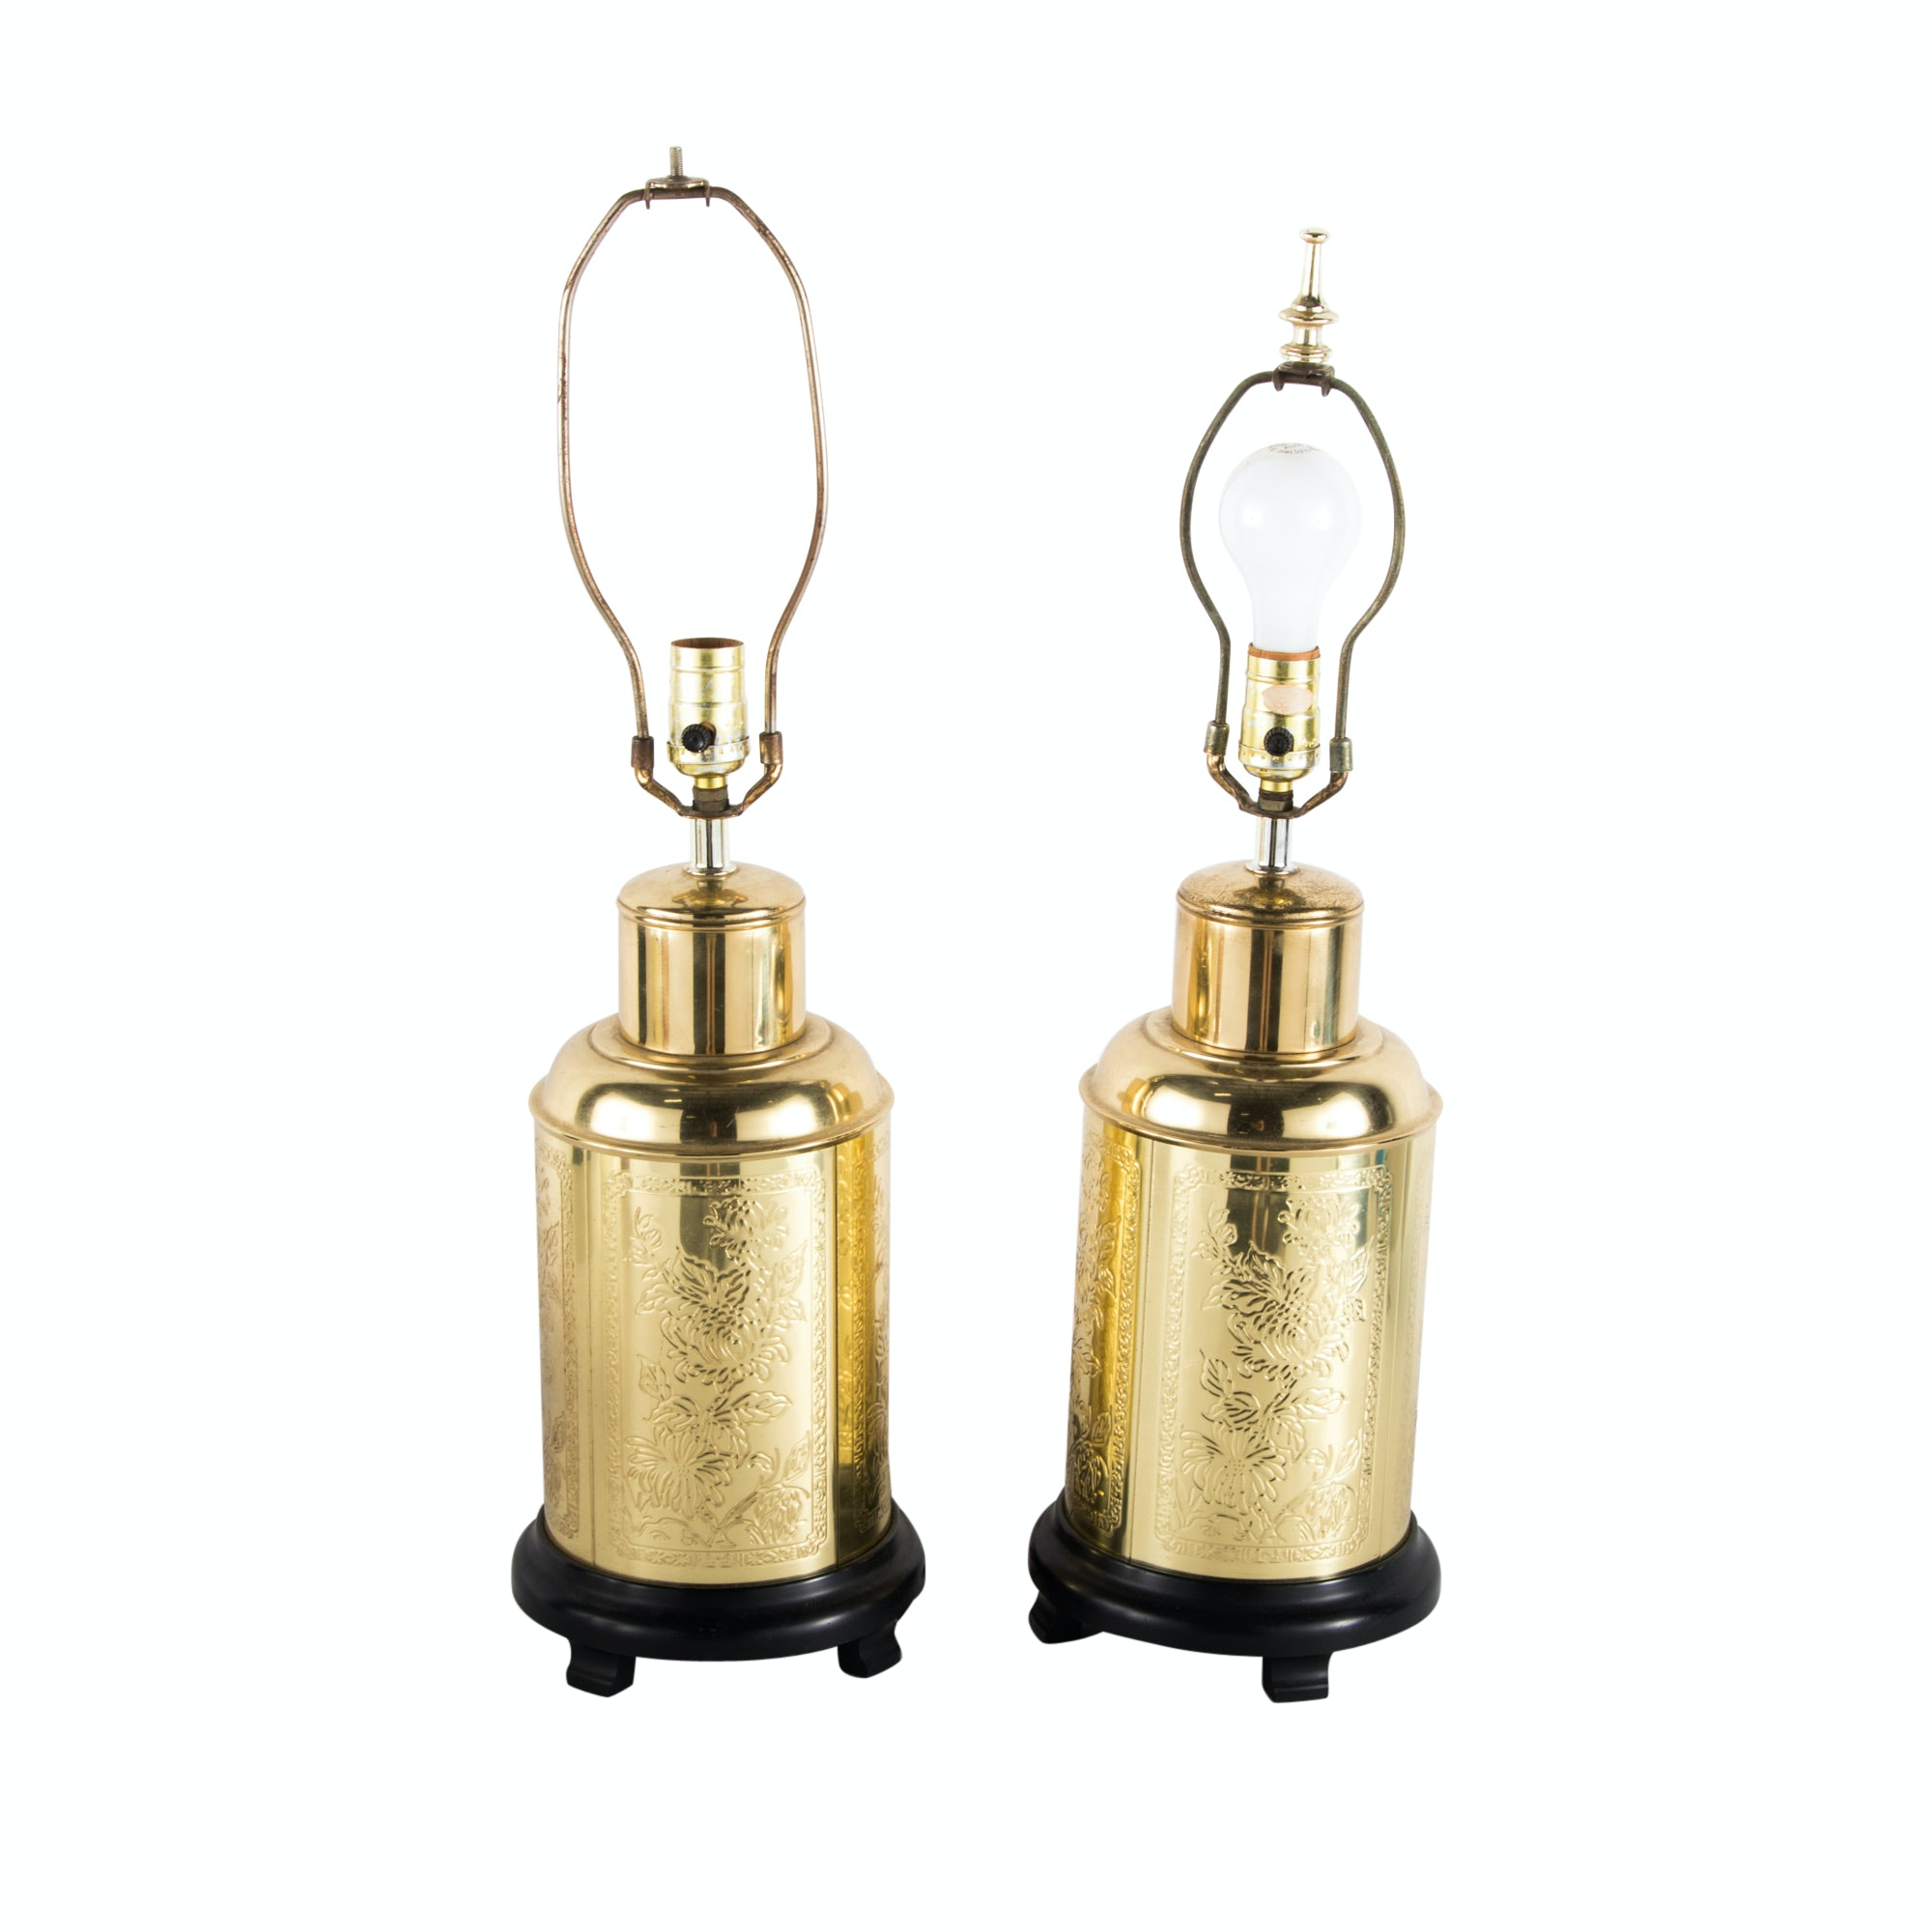 Pair of Gilt-Metal Tea Canister table lamps, 20th Century